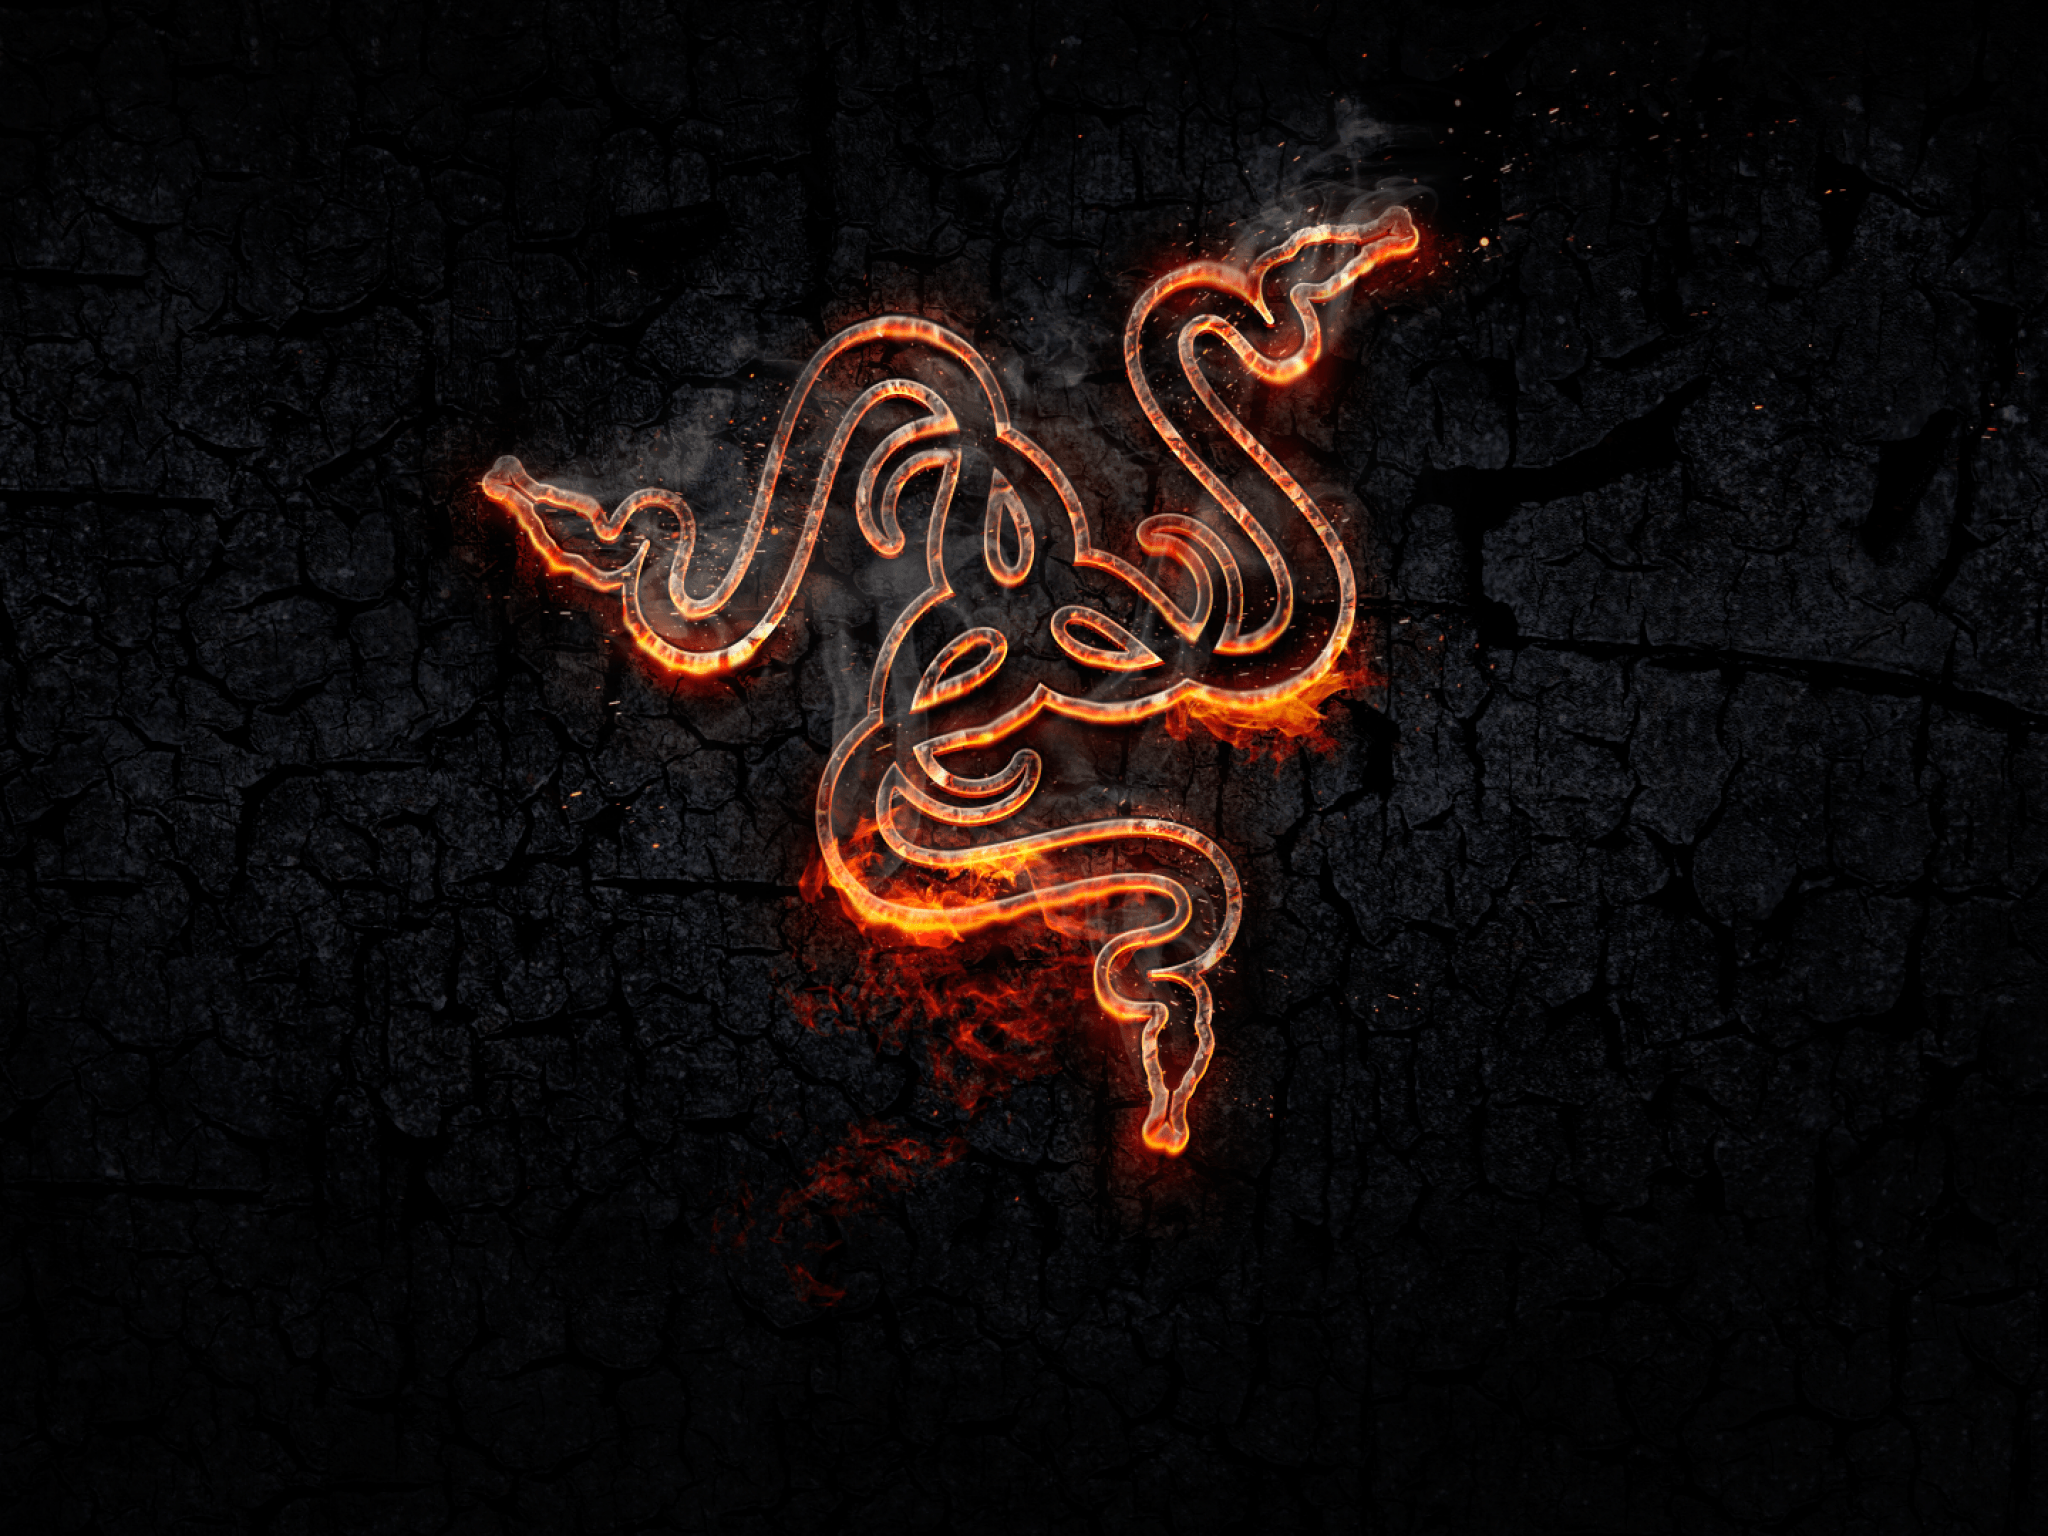 Download 2048x1536 Razer, Logo, Fire, Gaming, Snake Wallpapers for